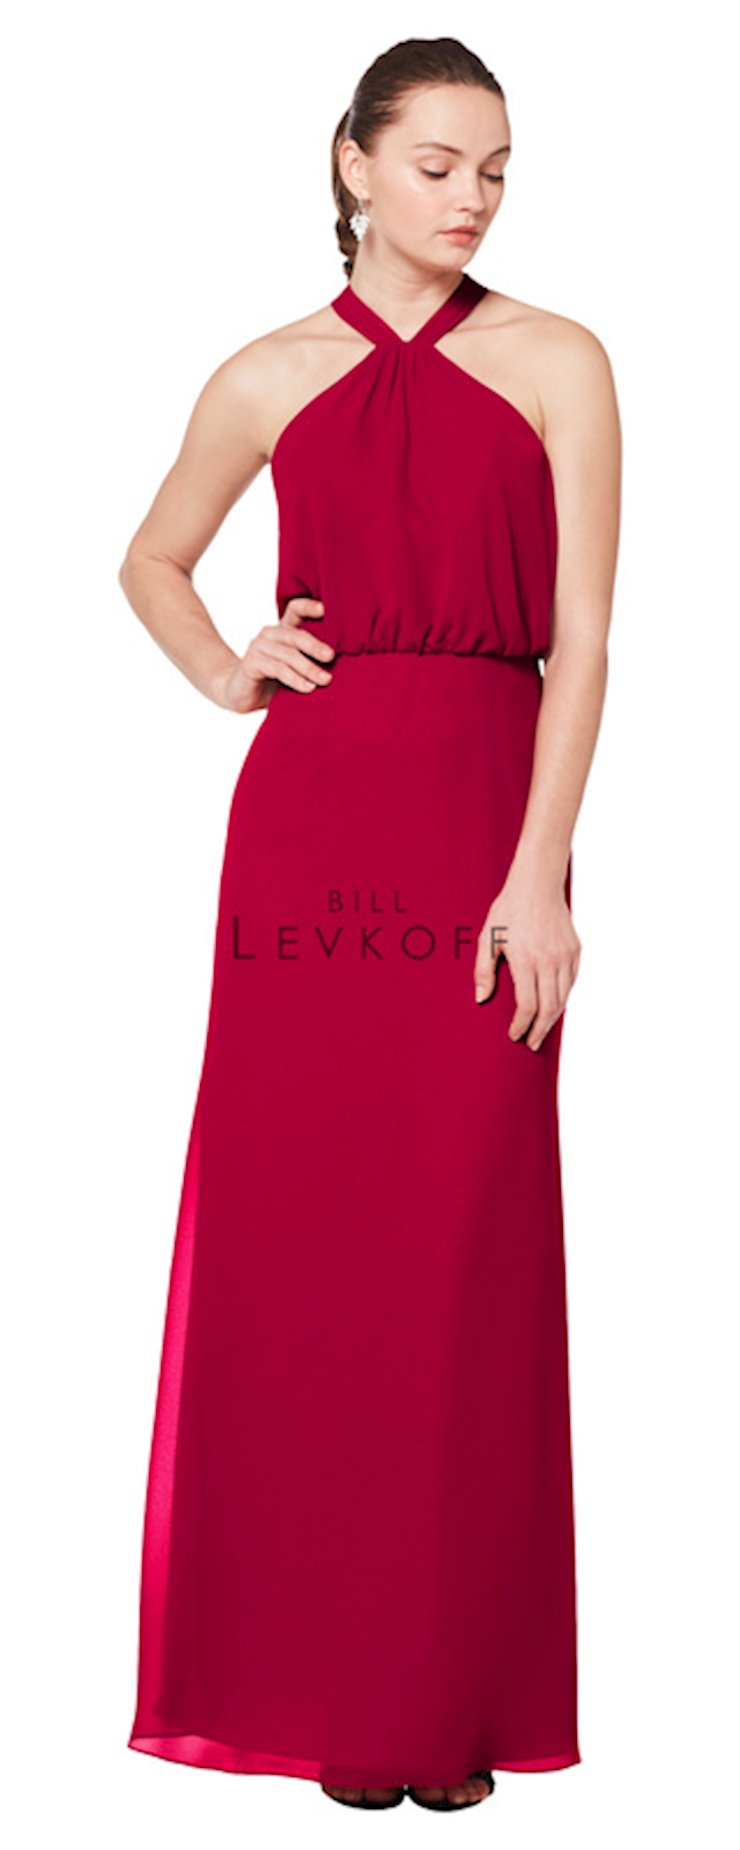 Bill Levkoff Style #1607 Image